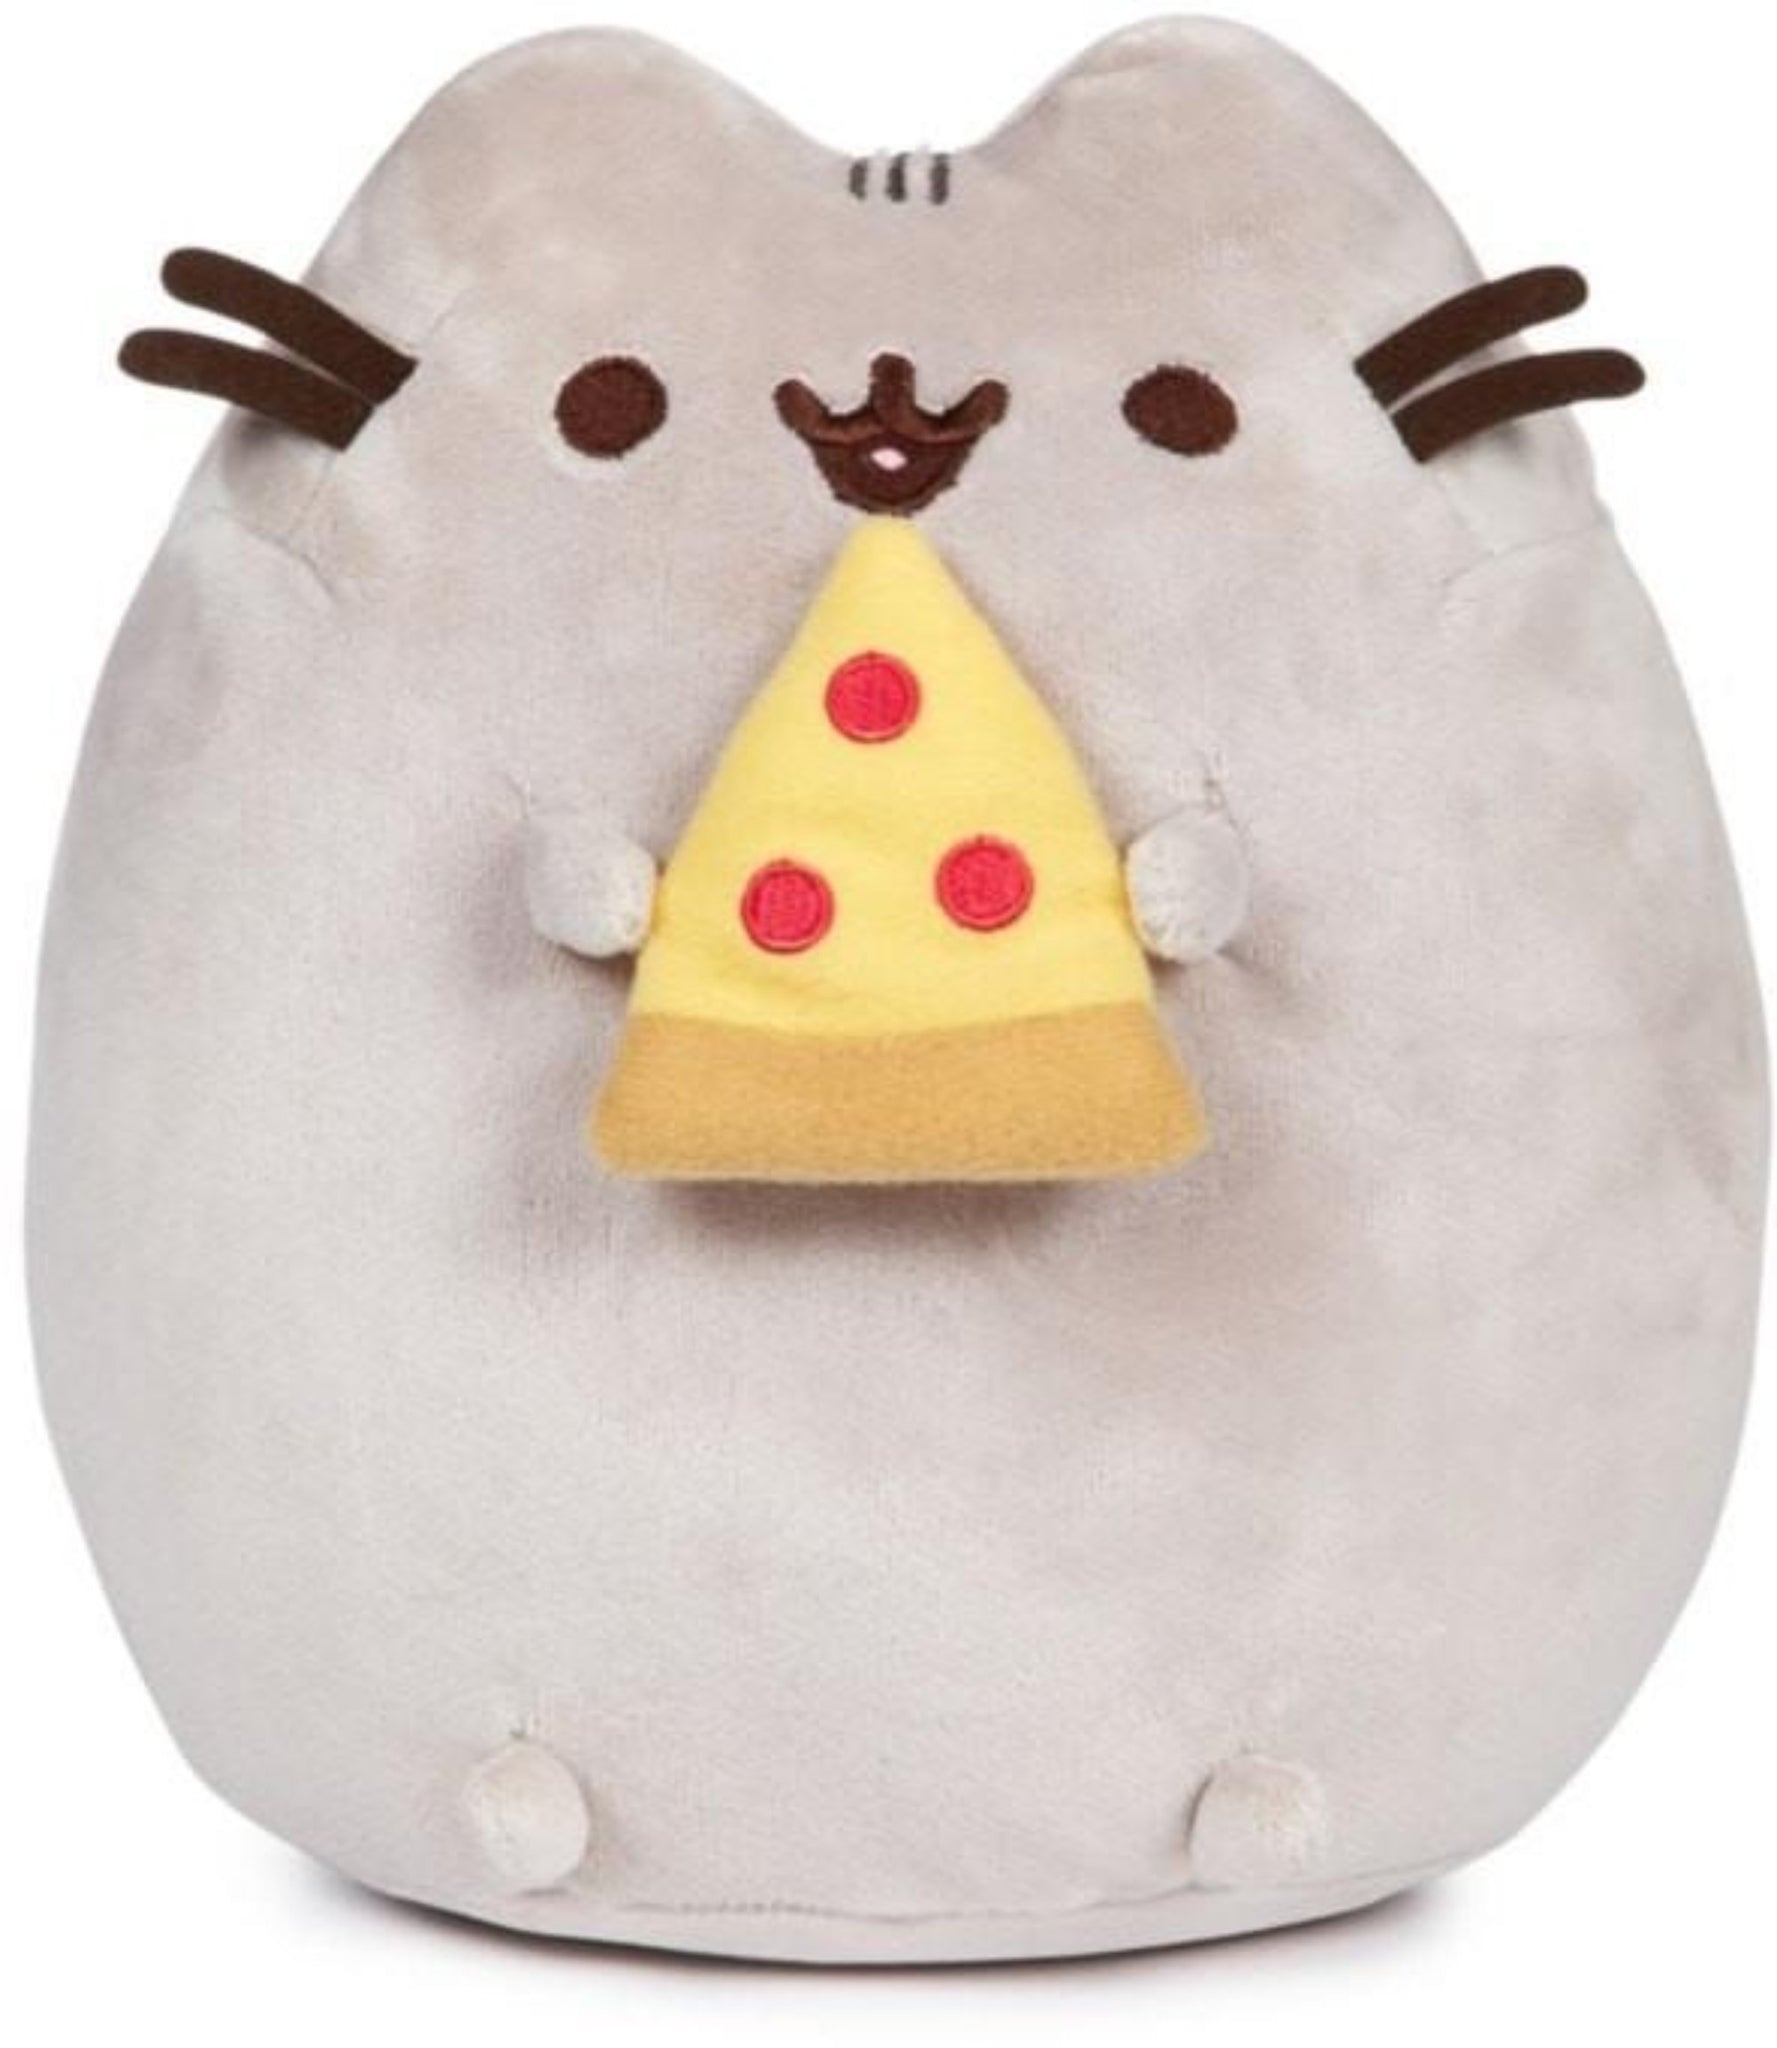 "Pusheen the Cat 10"" Pizza Plush GUND"